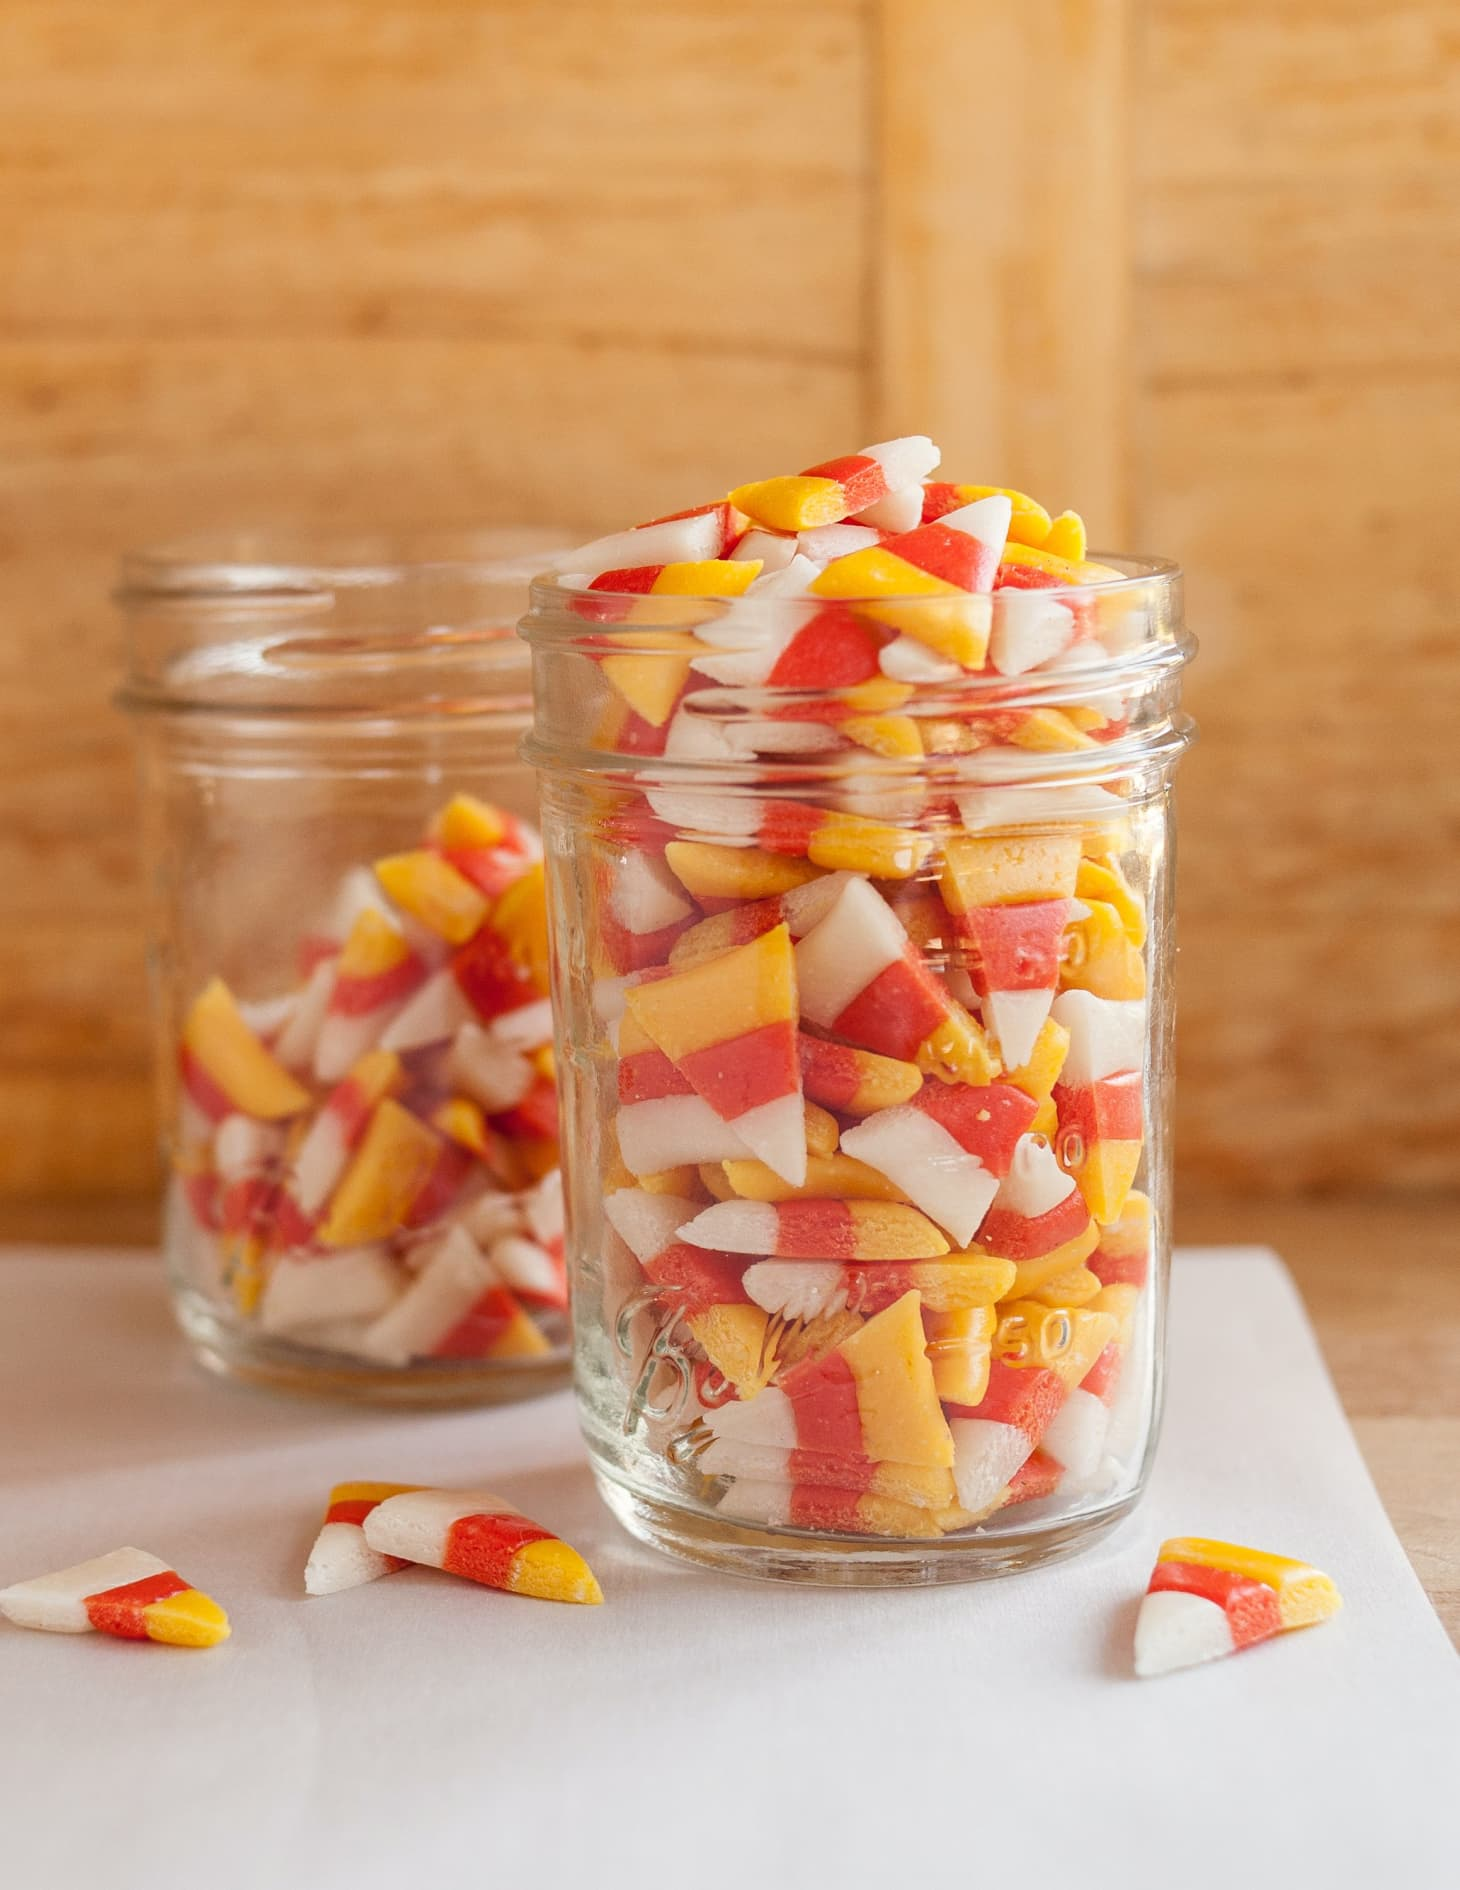 How To Make Candy Corn